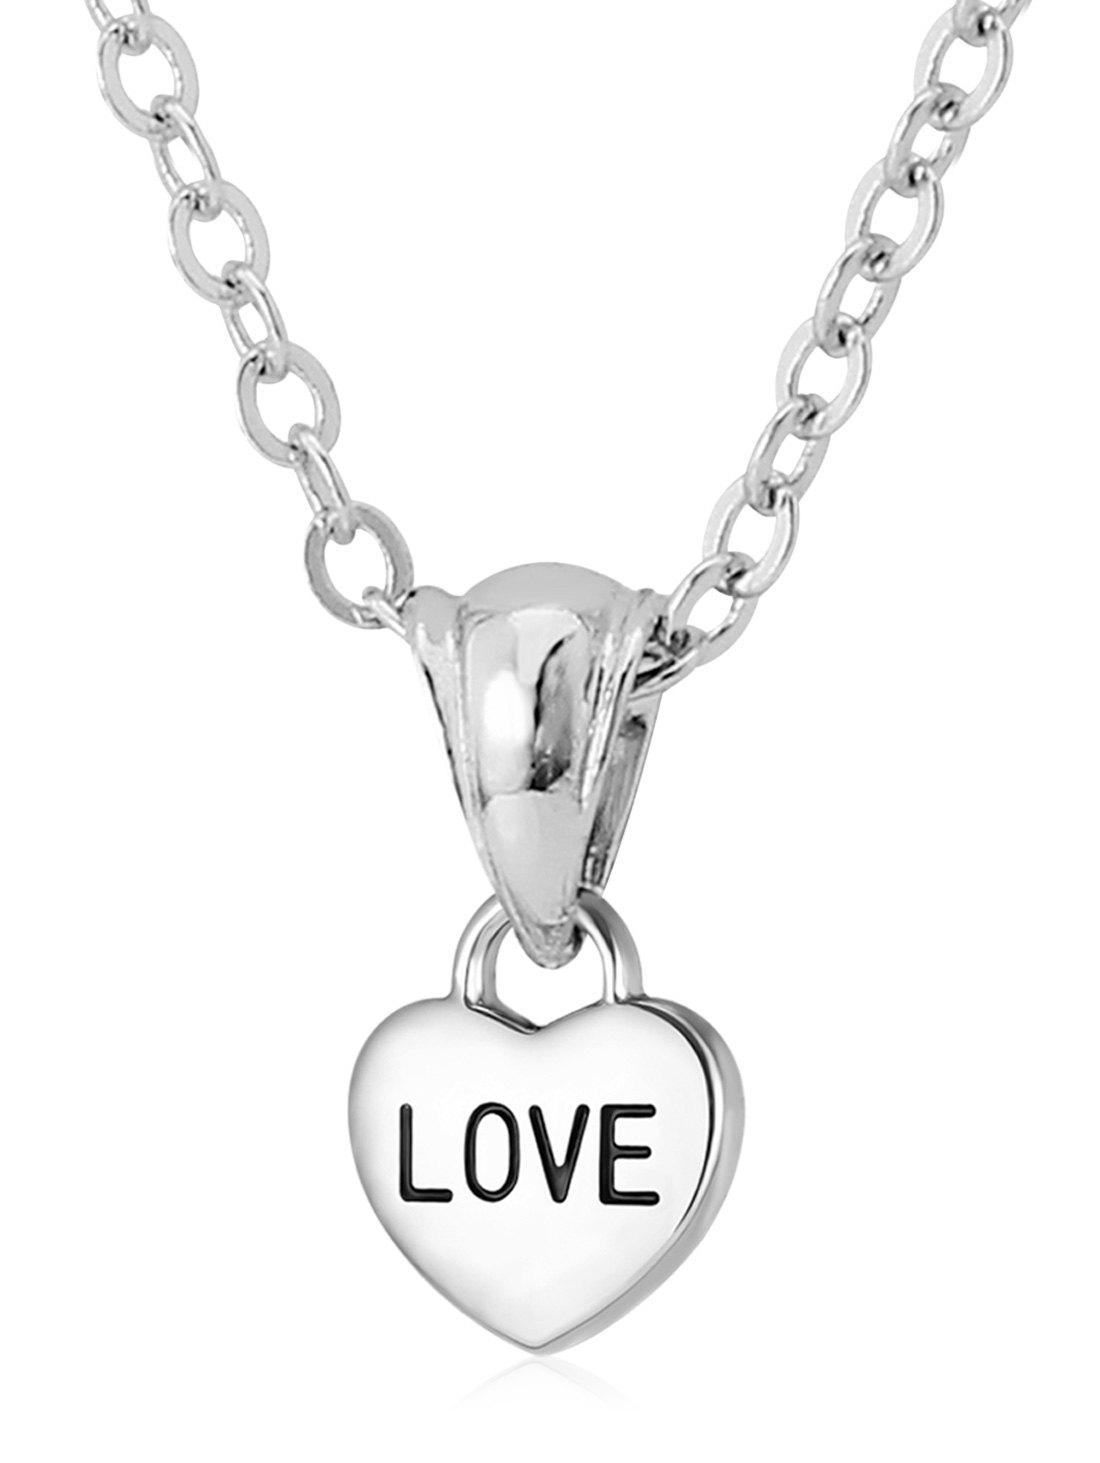 Best Stainless Steel Heart Designed Pendant Necklace